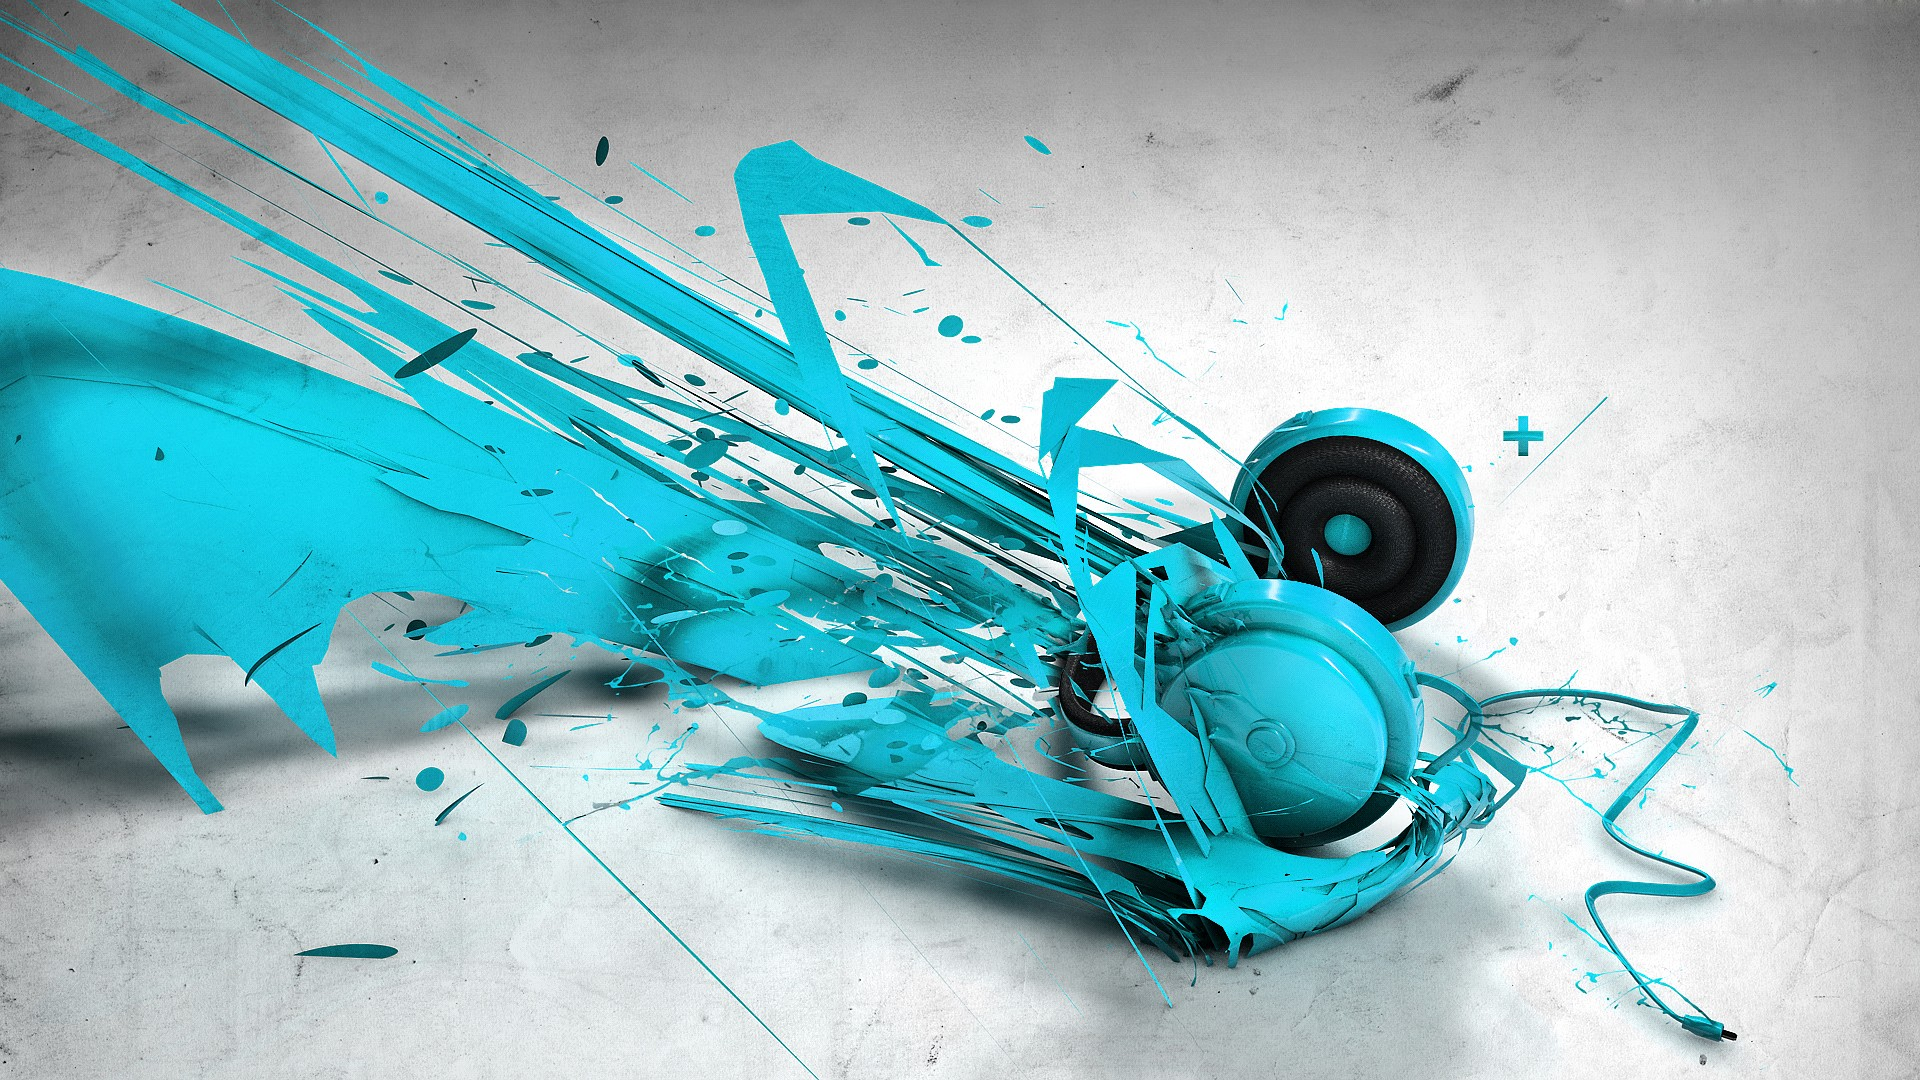 Download Wallpaper Music Headphone - headphones-music-1920x1080-wallpaper  Snapshot_524577.jpg